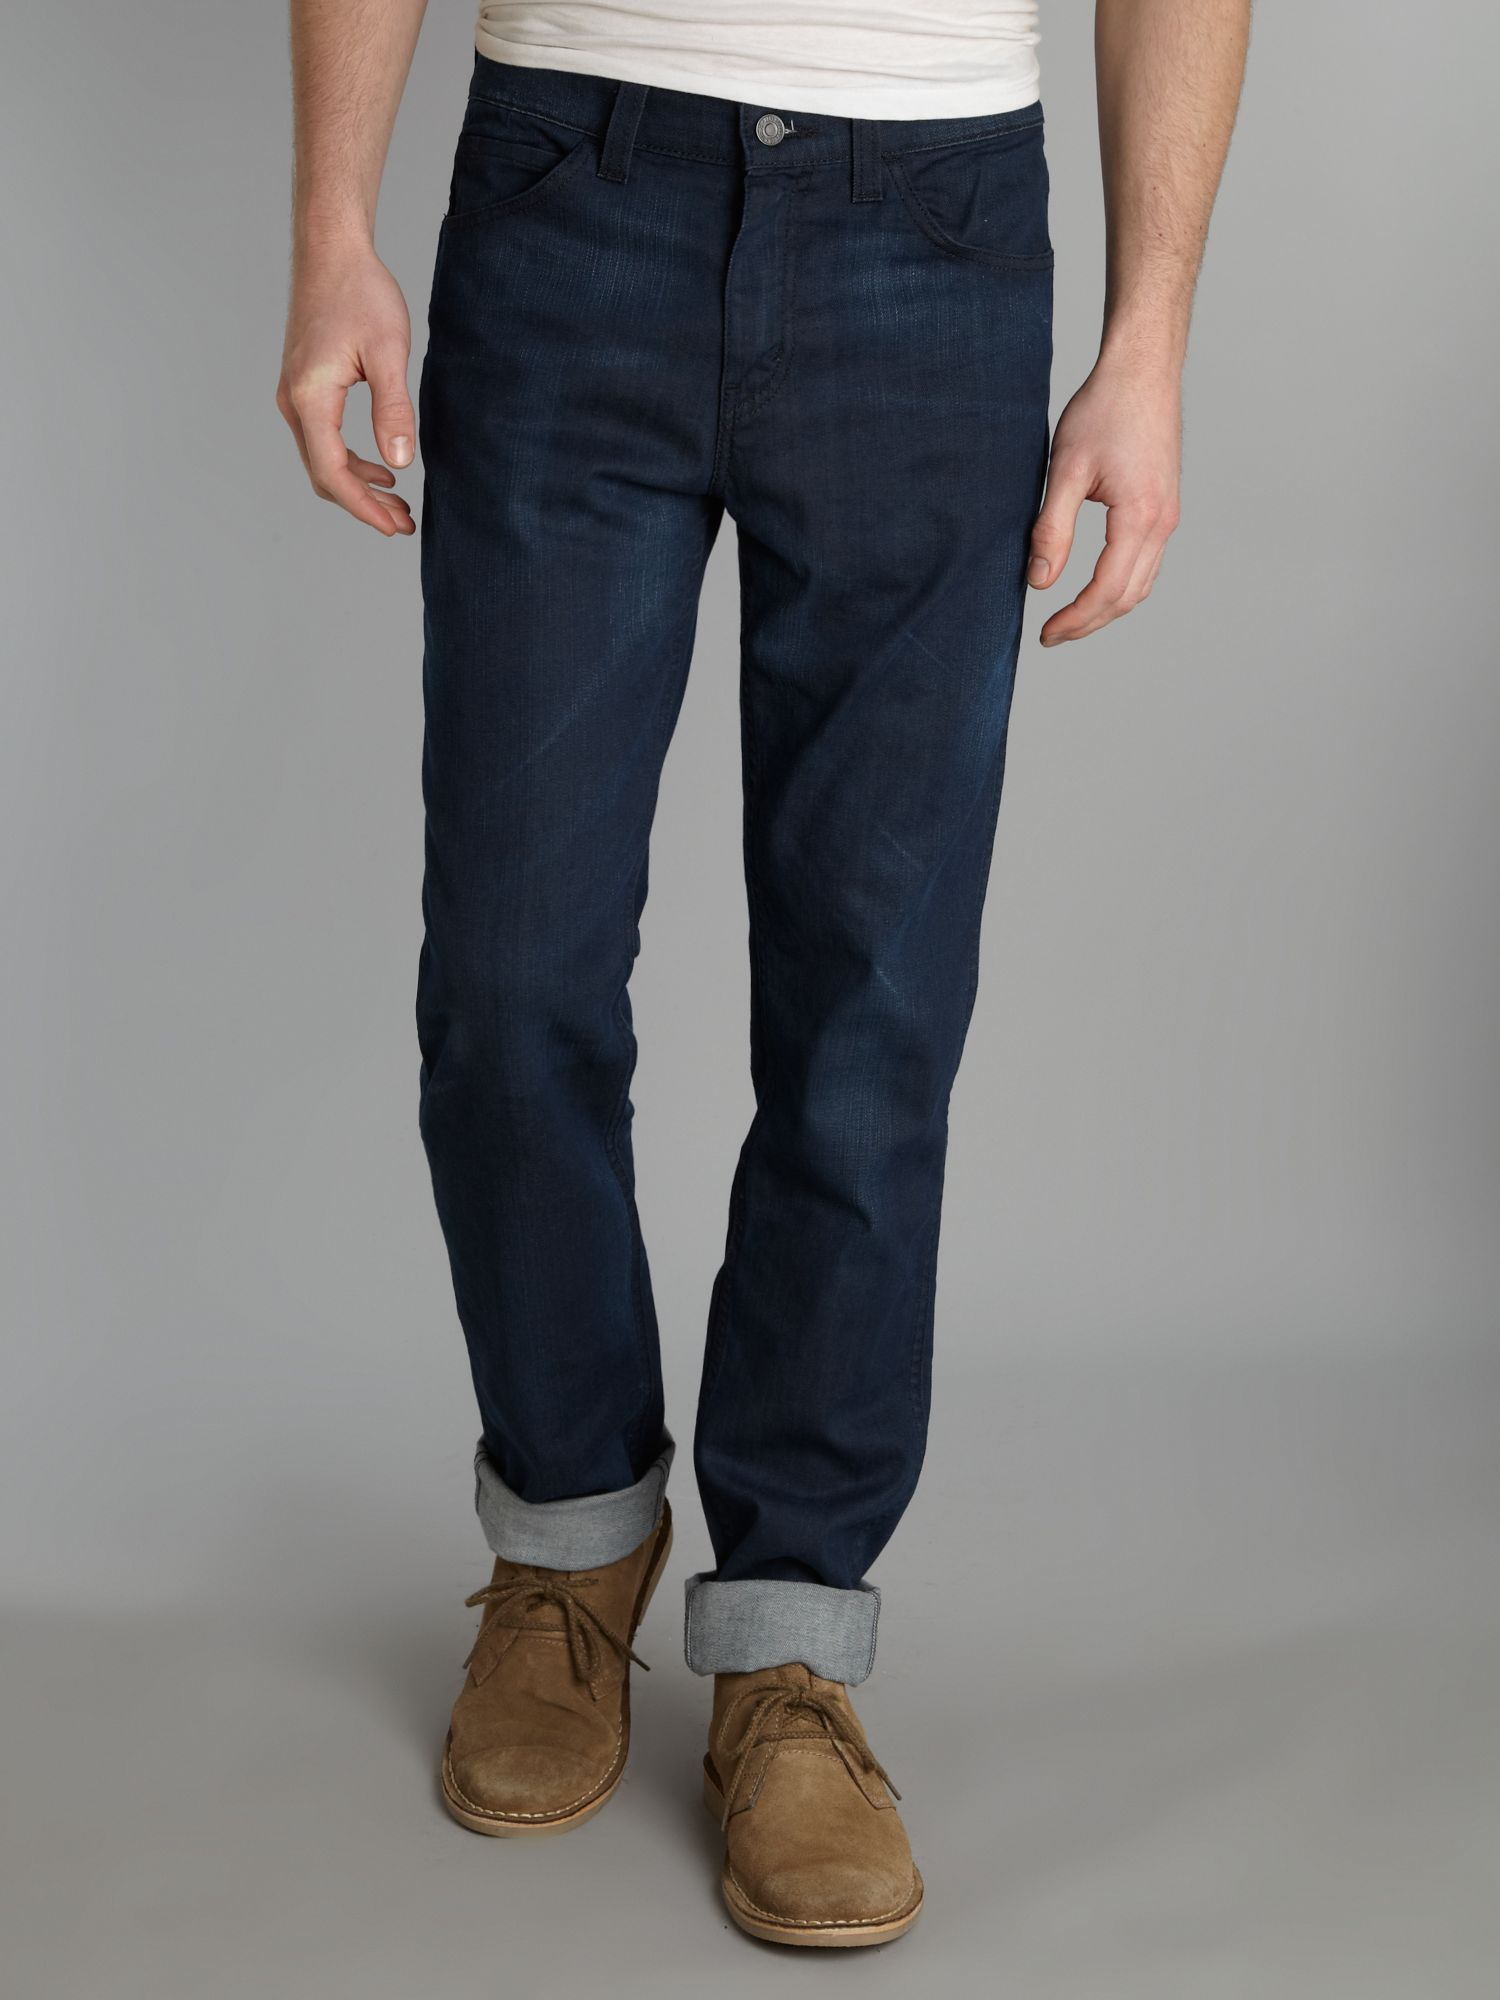 Line 8 511 worn in slim fit jeans